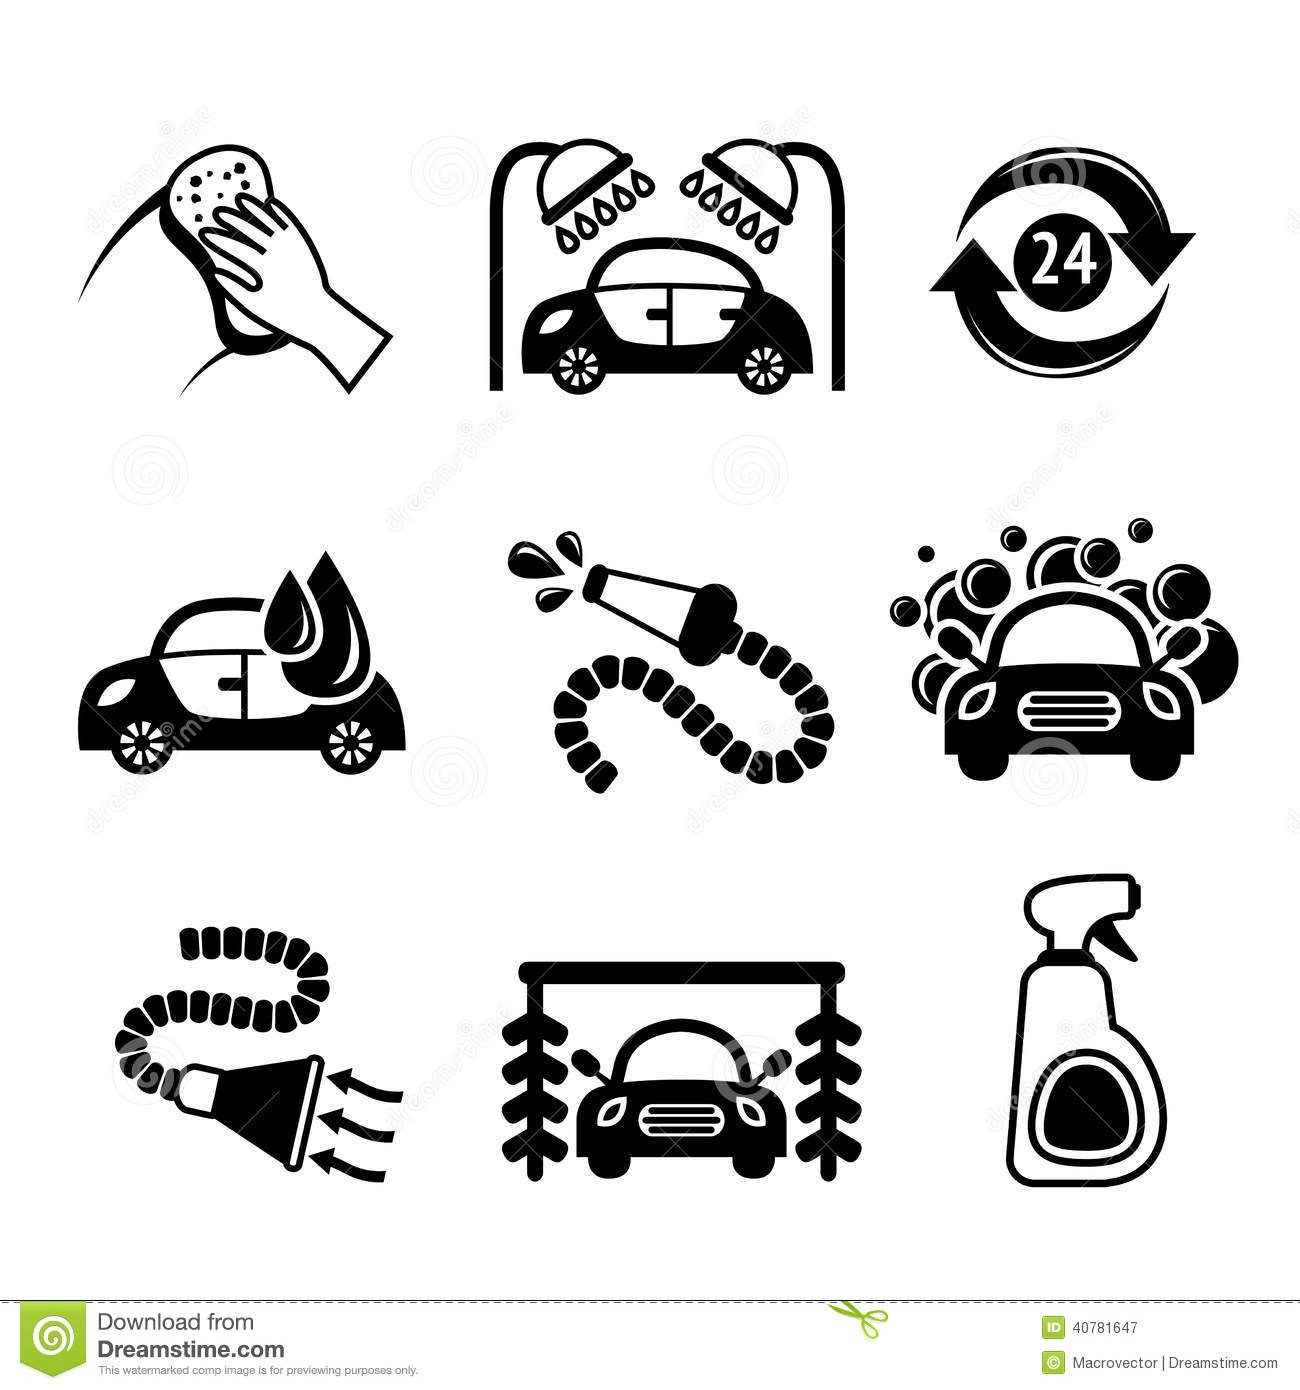 Circle Arrow likewise 252093458607 further 322408028869 additionally Gods Got This Decal Vinyl Sticker Car besides Royalty Free Stock Photography Car Wash Icons Black White Auto Cleaner Washer Shower Service Isolated Vector Illustration Image40781647. on s car window